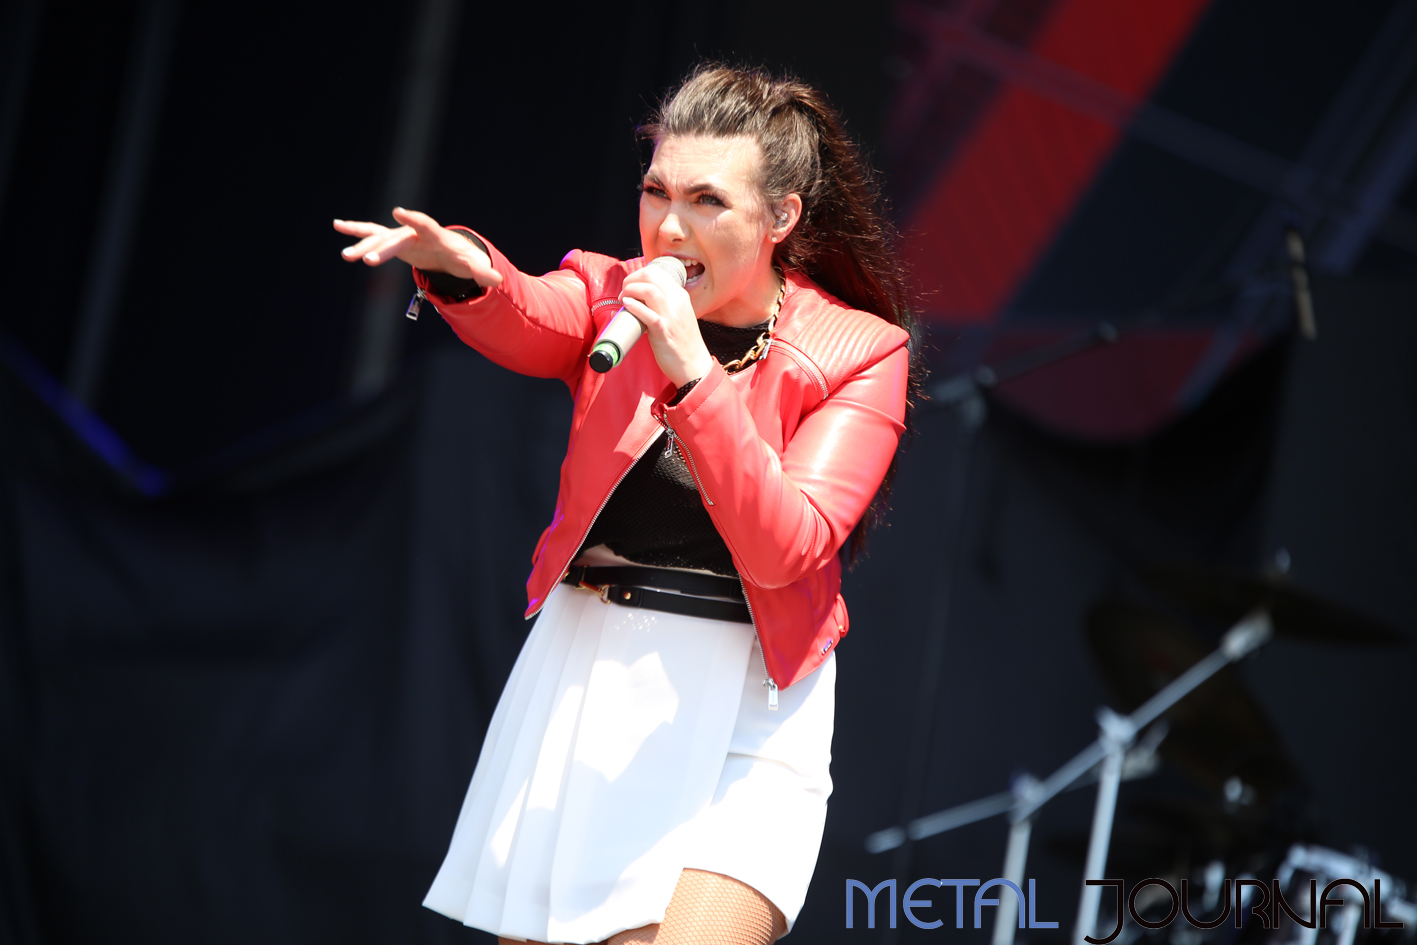 amaranthe rock fest 18 - metal journal pic 1